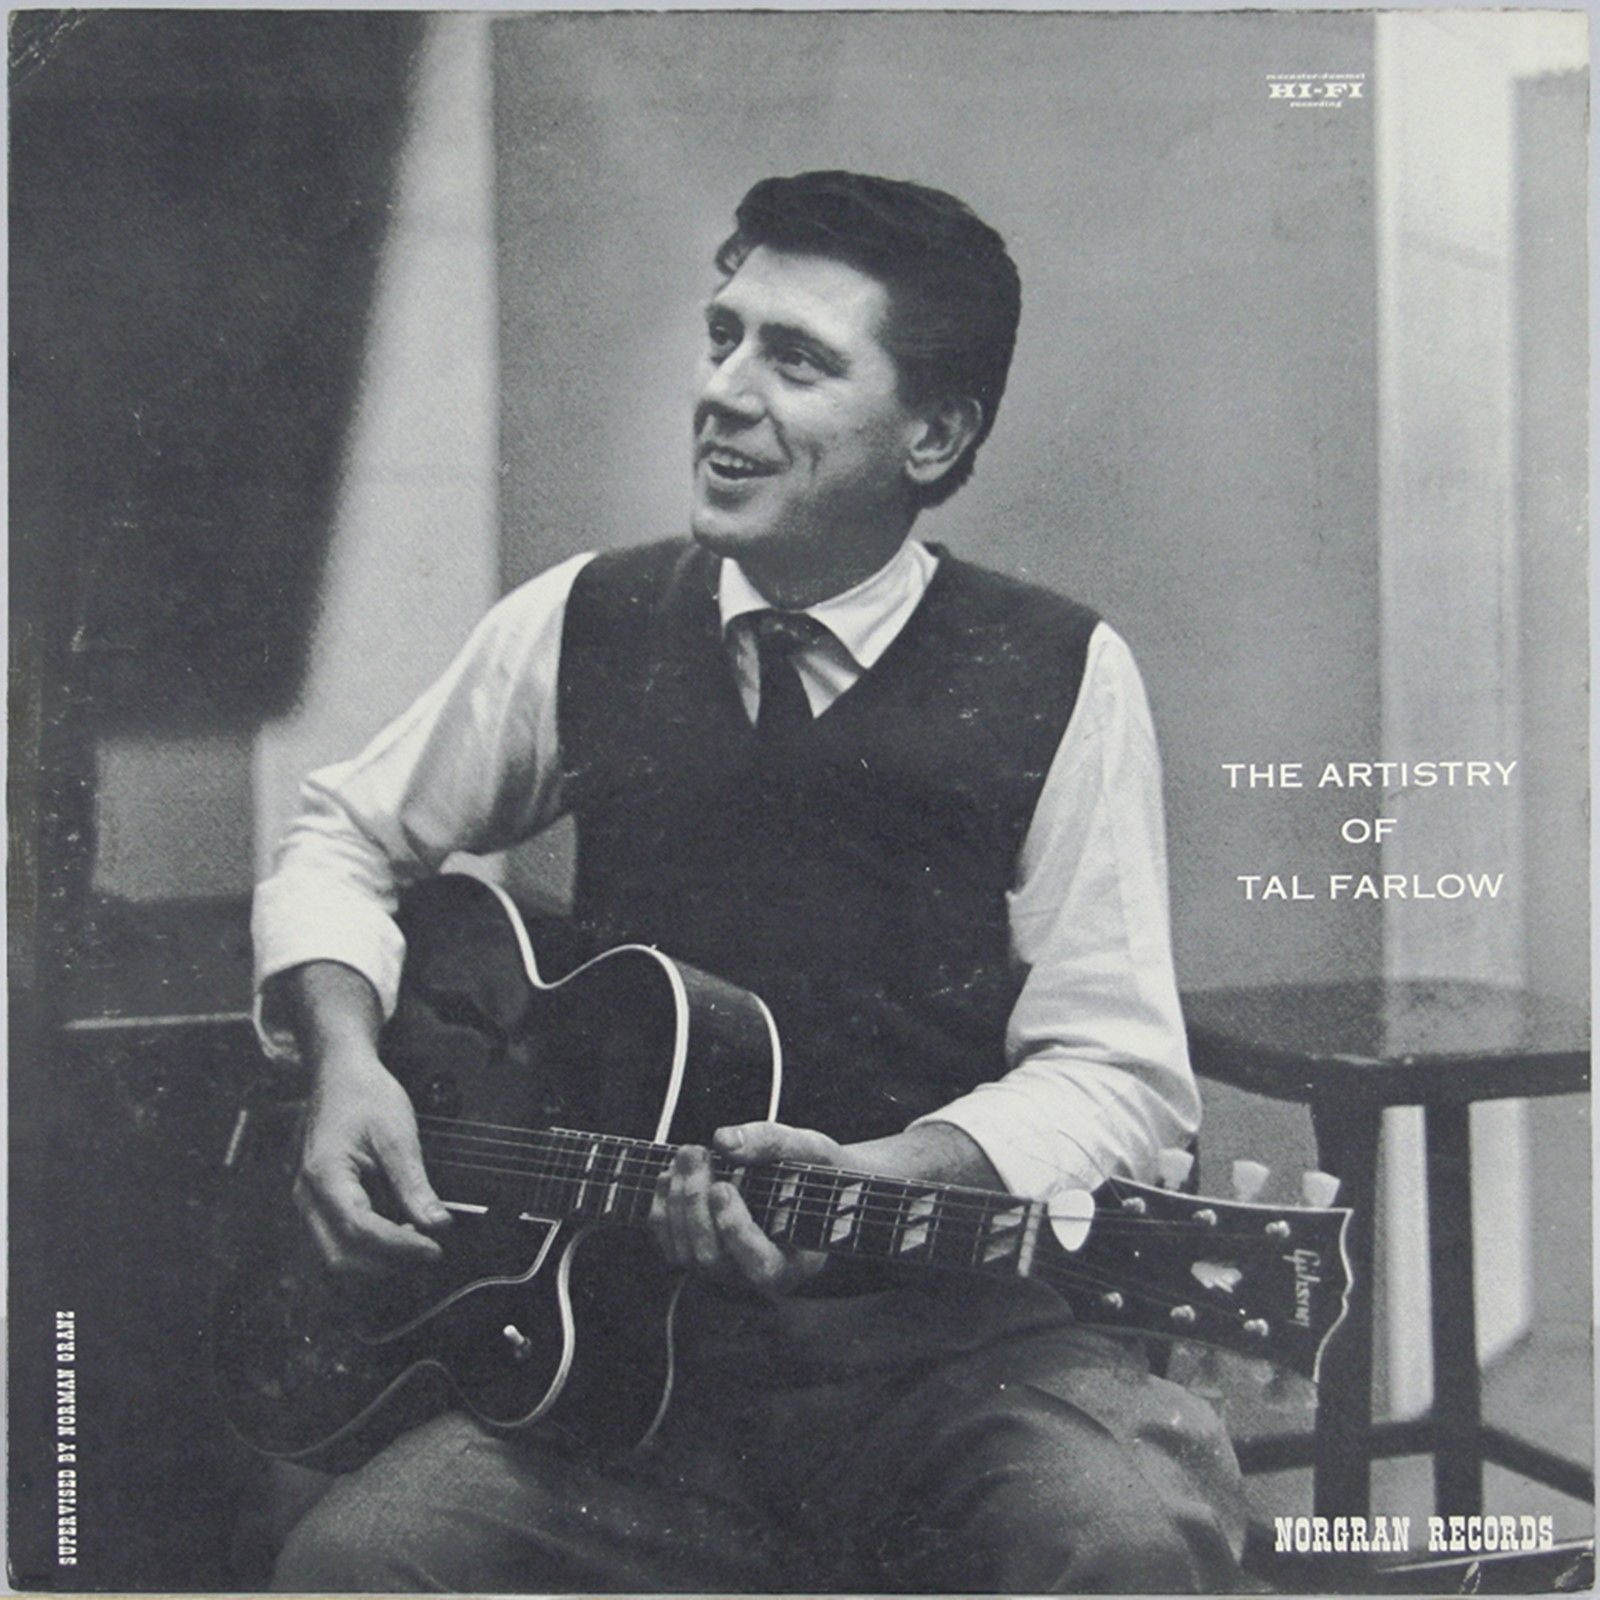 tal farlow - the artistry of 1014